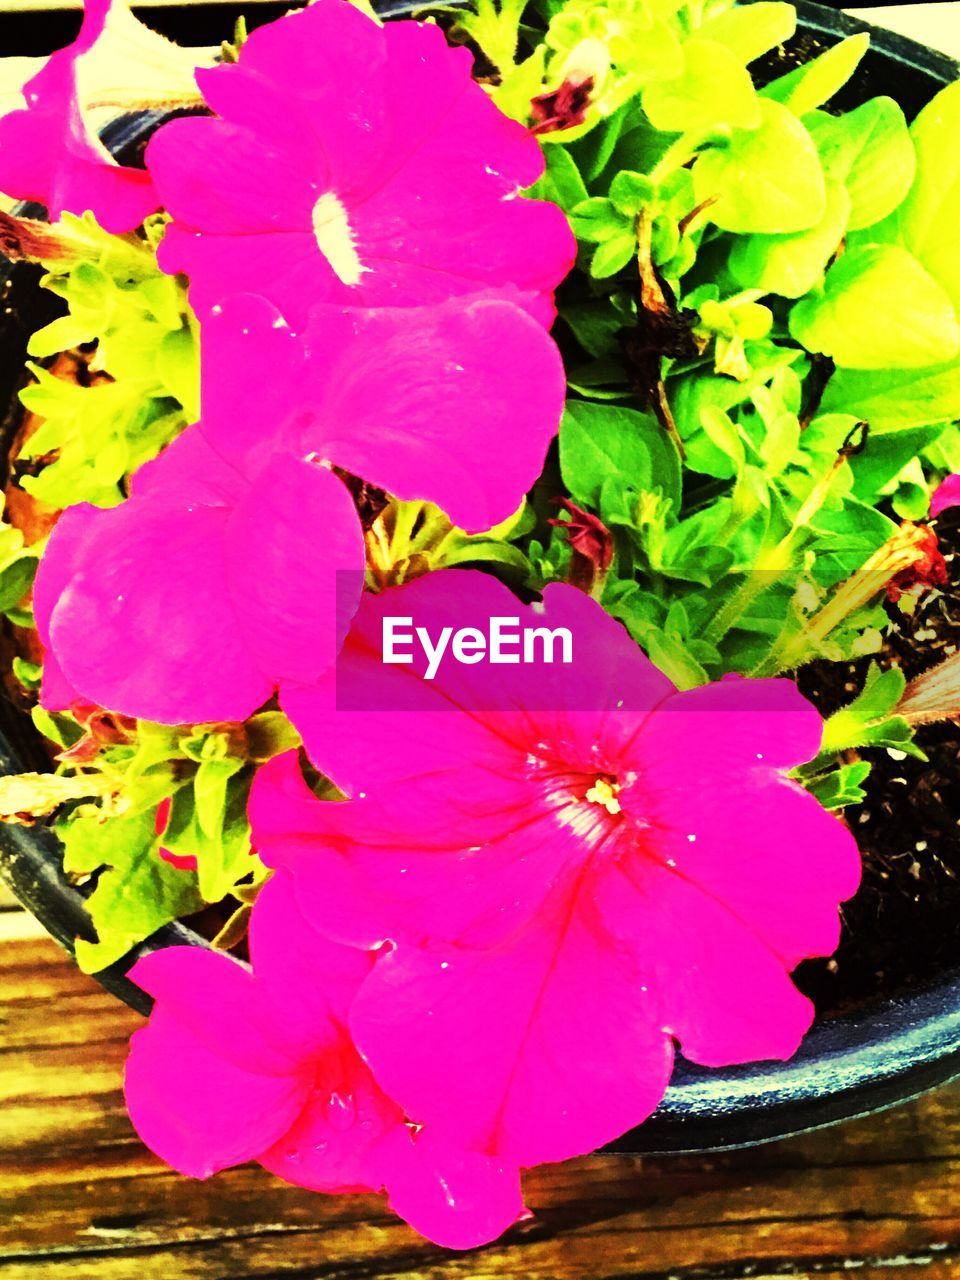 flower, petal, fragility, beauty in nature, no people, nature, growth, flower head, freshness, water, day, plant, outdoors, close-up, leaf, petunia